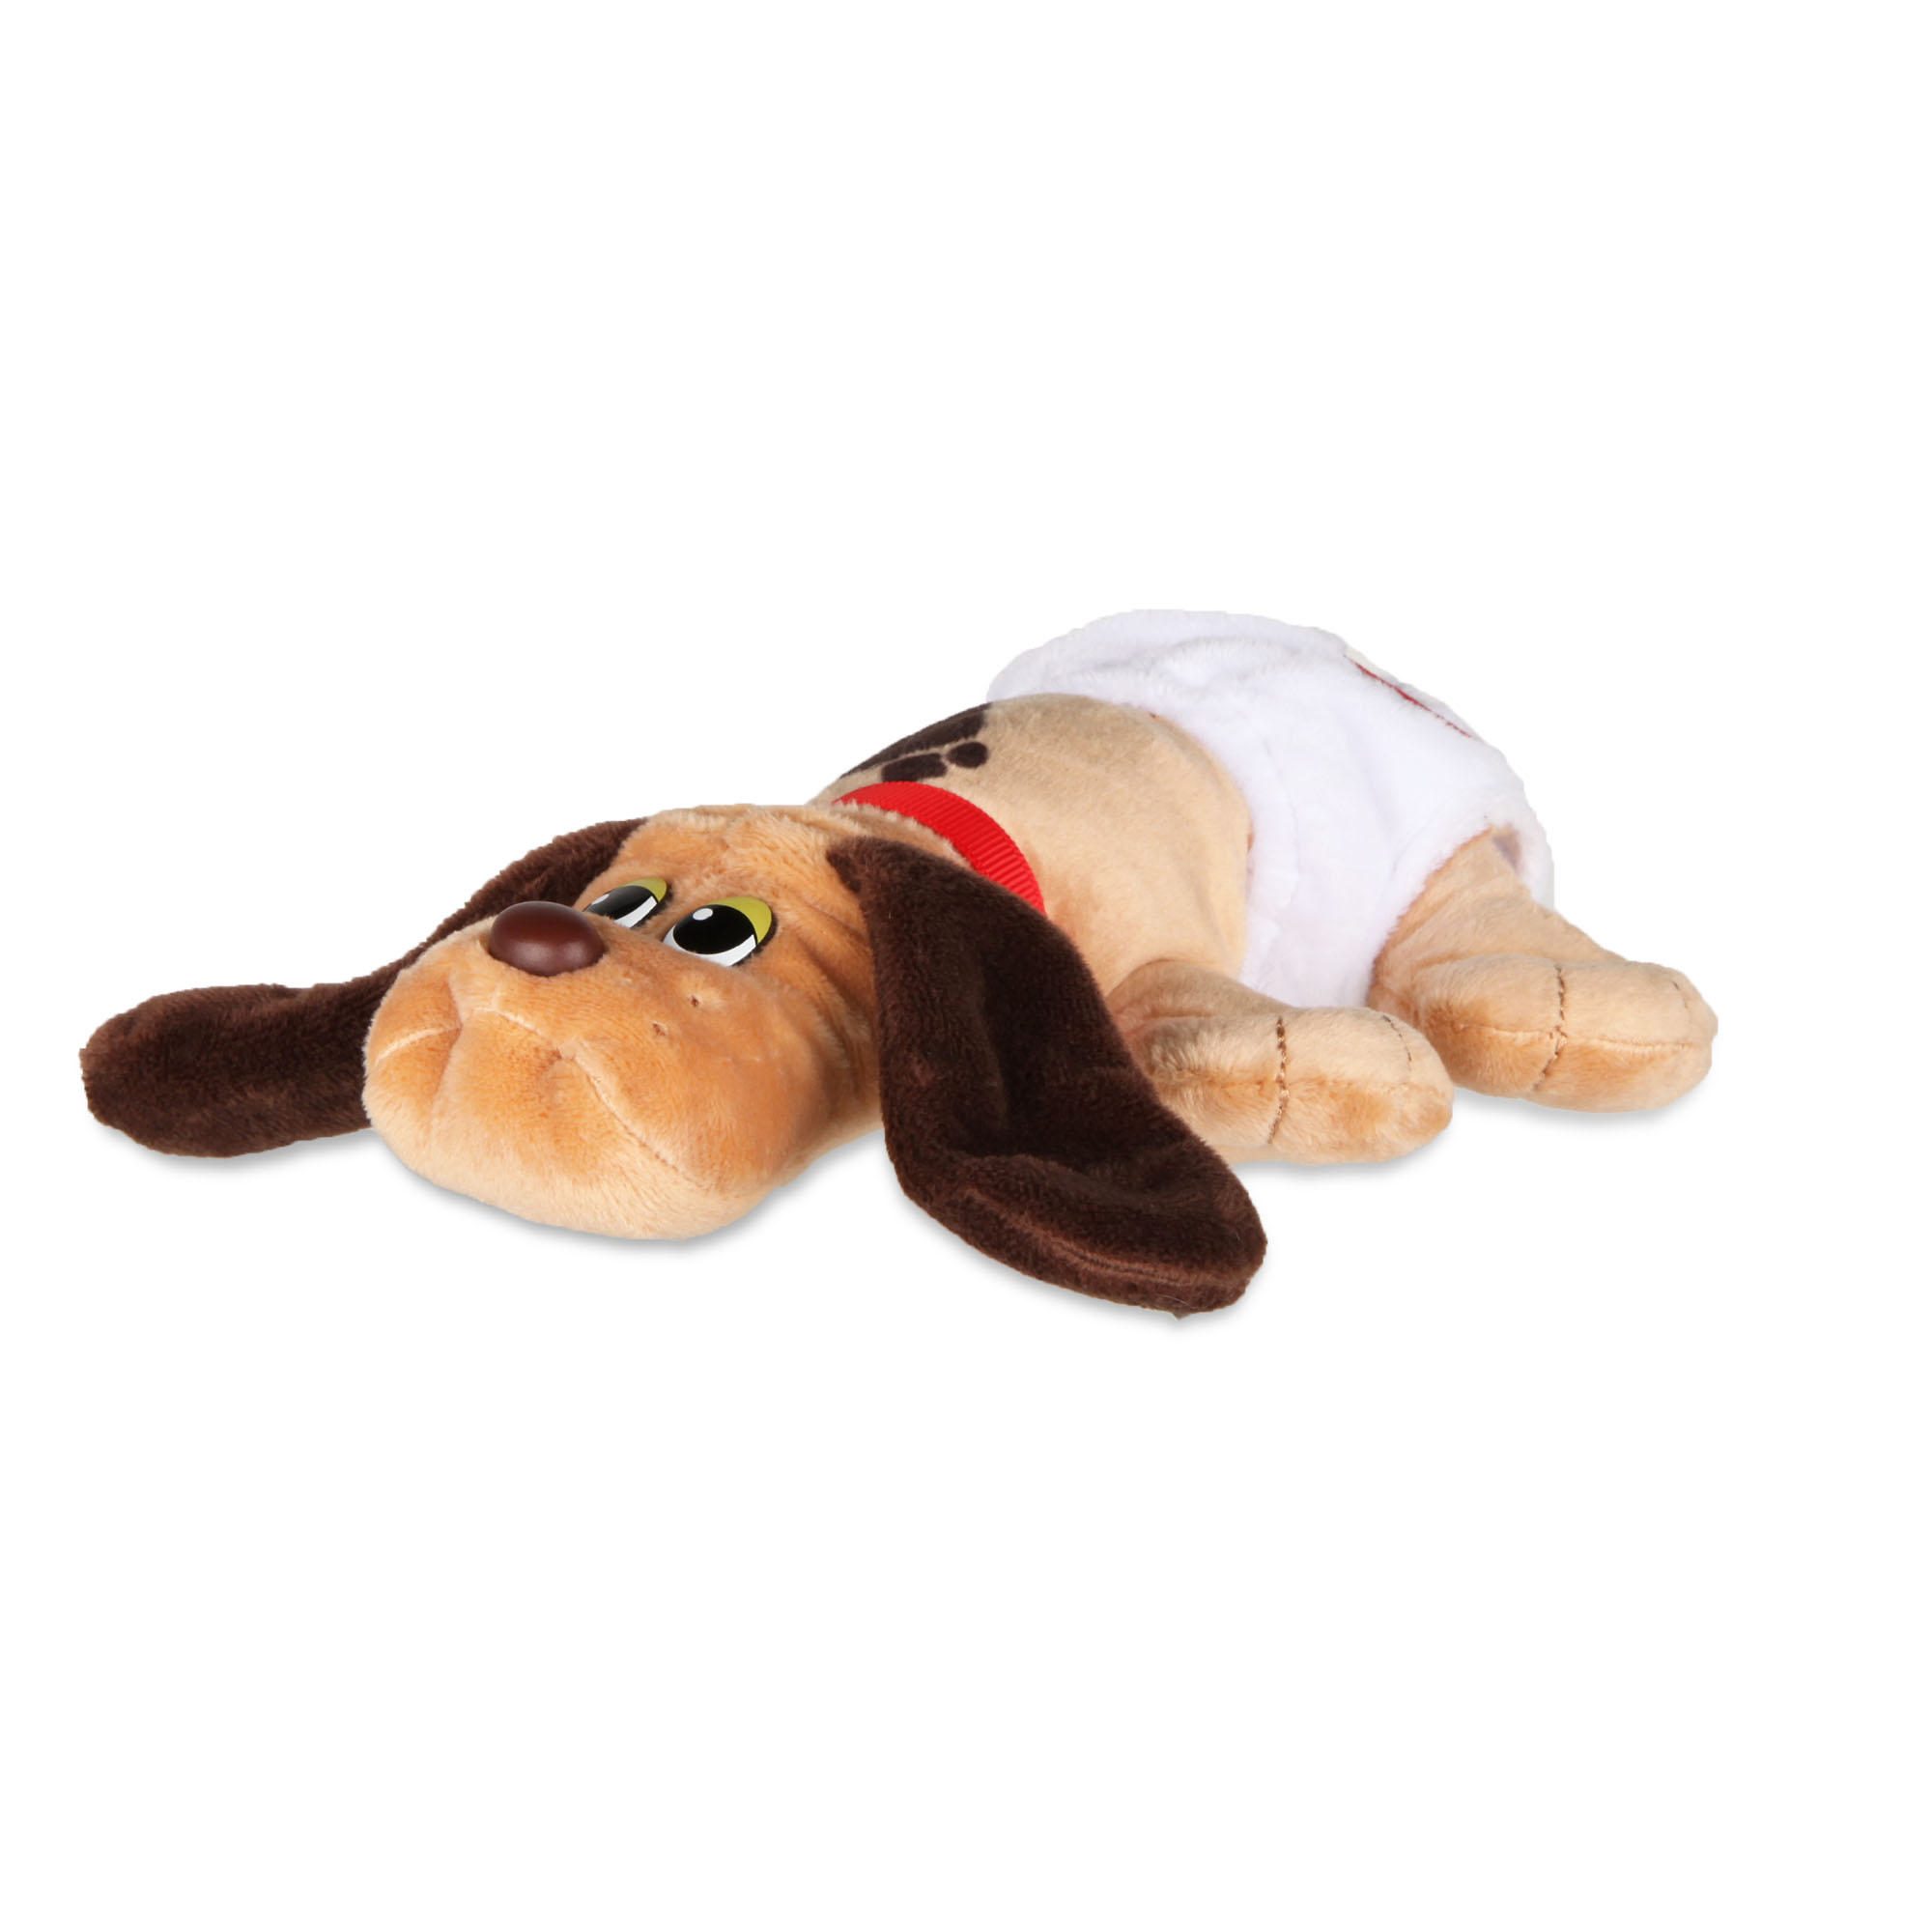 Pound Puppies Newborns Classic 80's Collection - Light Brown with Dark Brown Spots